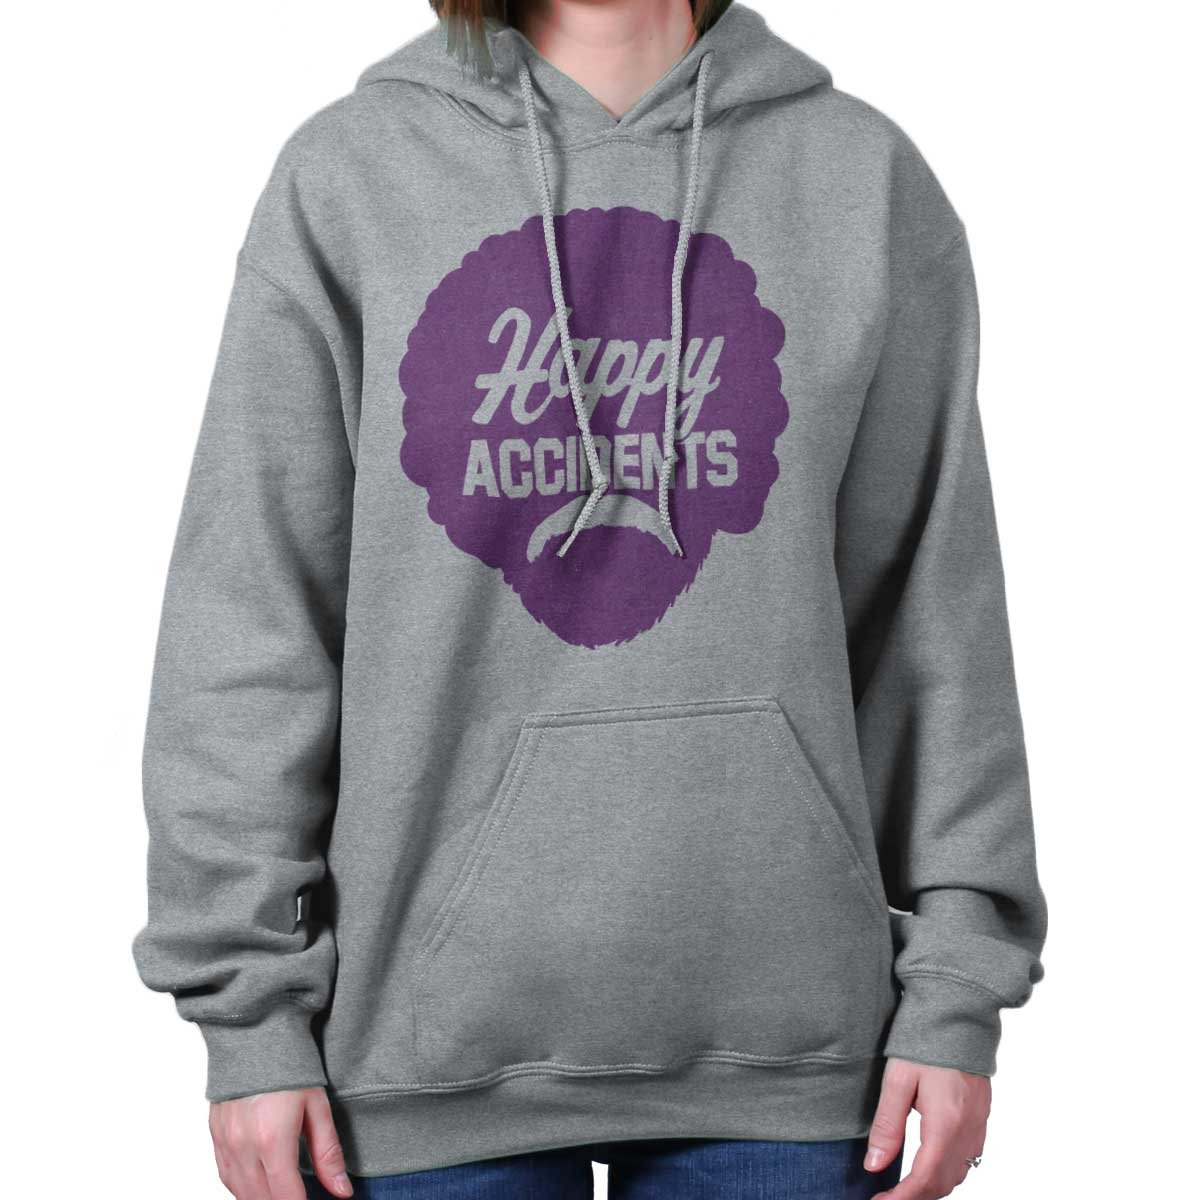 Brisco Brands Happy Accidents No Mistakes Bob Ross Joy of Painting Hoodie Sweatshirt by Brisco Brands (Image #4)